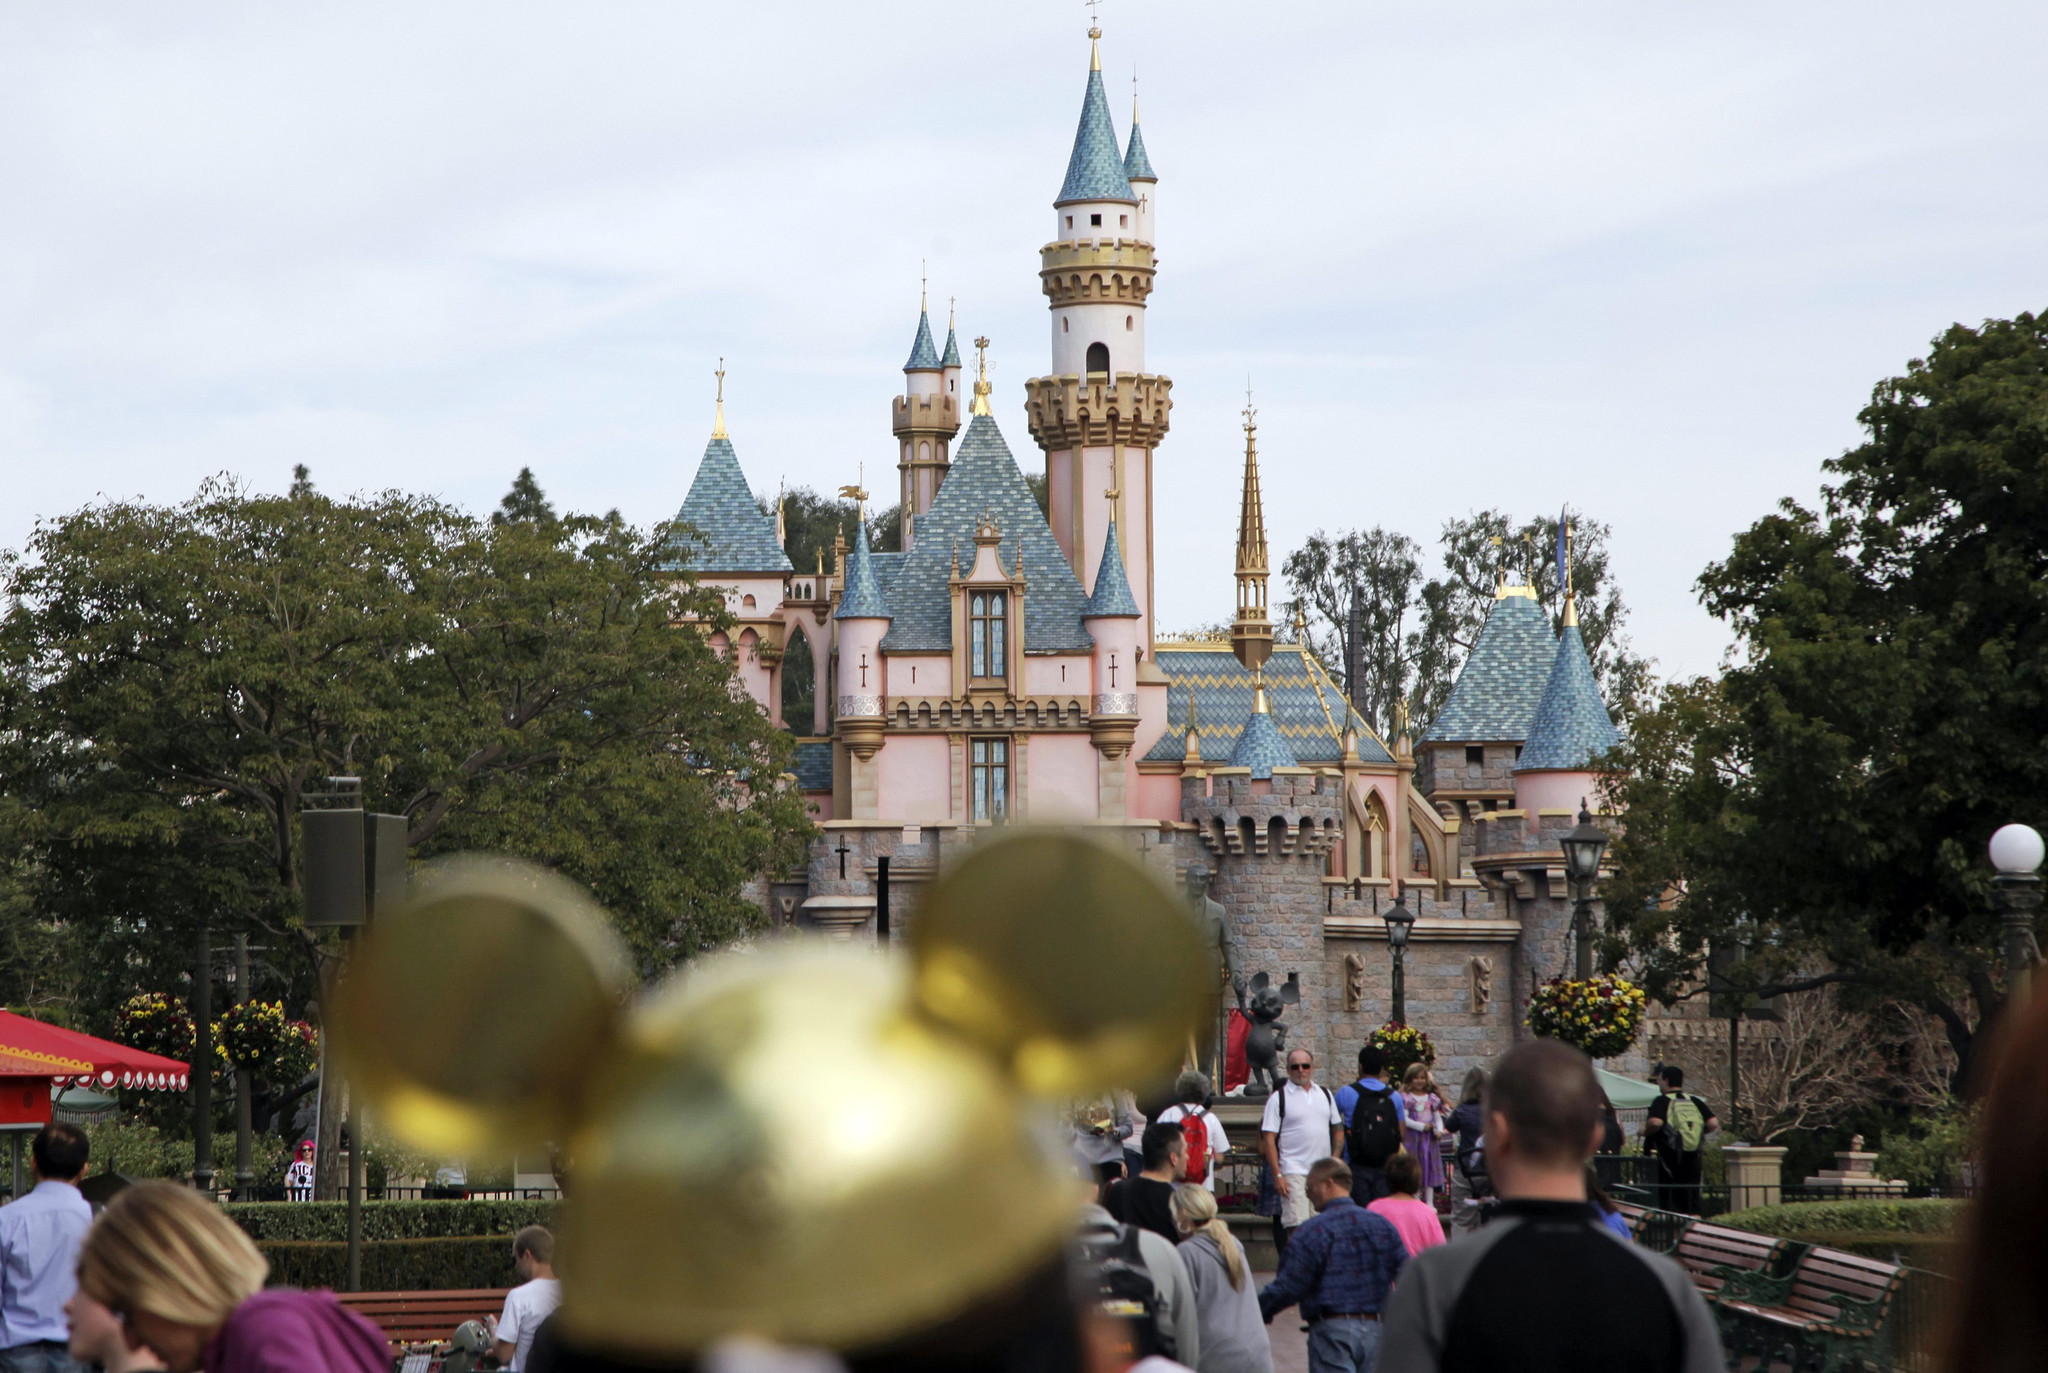 Person with measles visited Disneyland while infectious, L.A. health officials warn